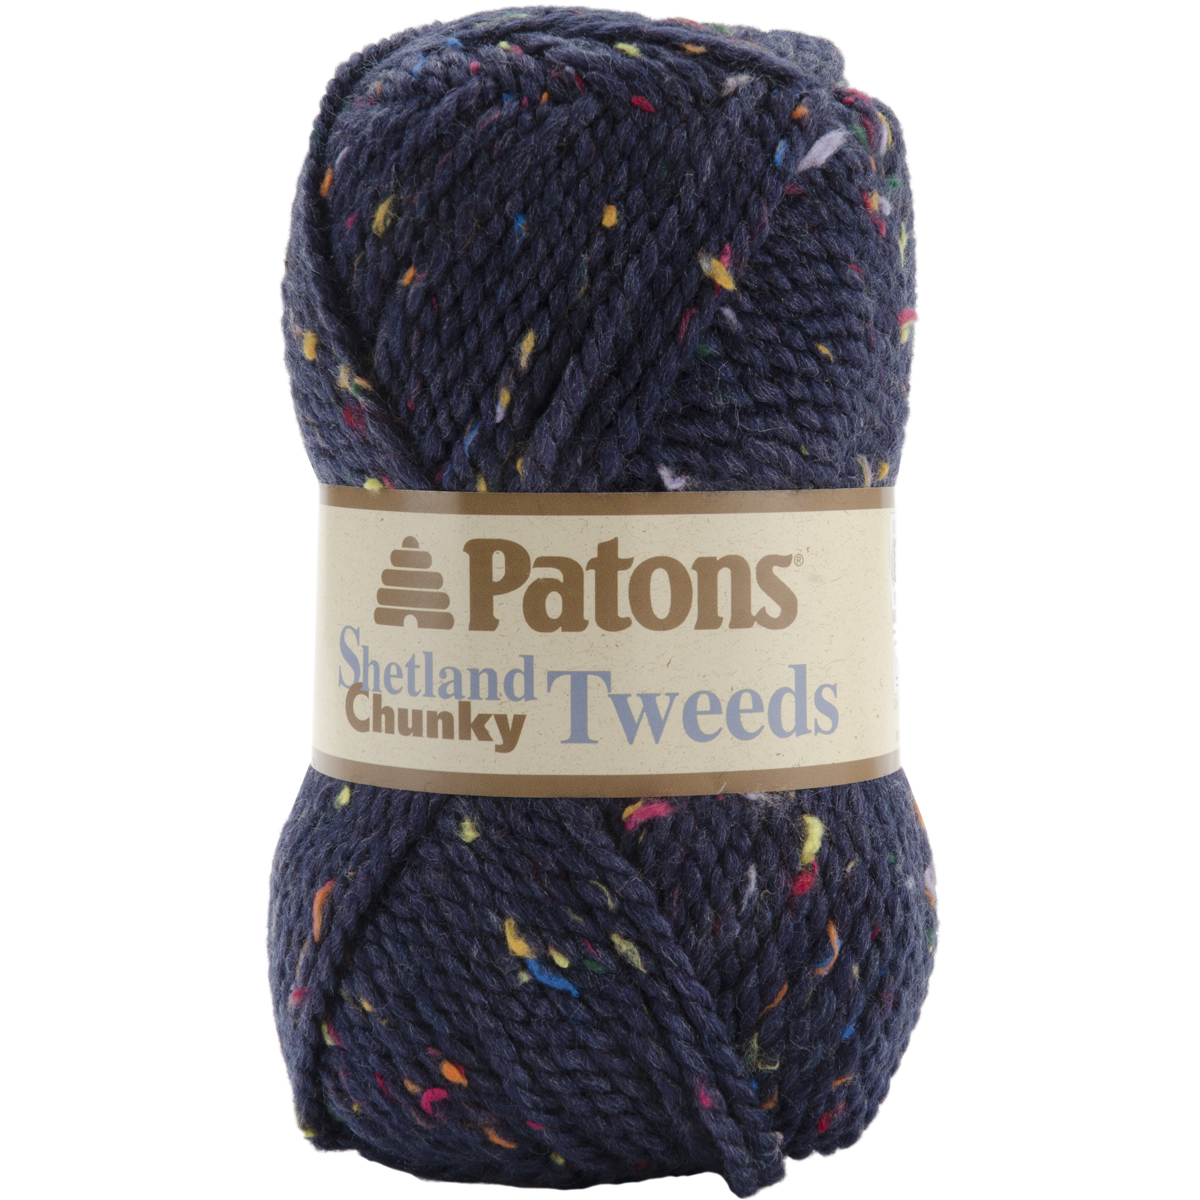 Patons Yarn : ... Softness Meter - Rating 6 ? Patons Shetland Chunky Tweeds Yarn